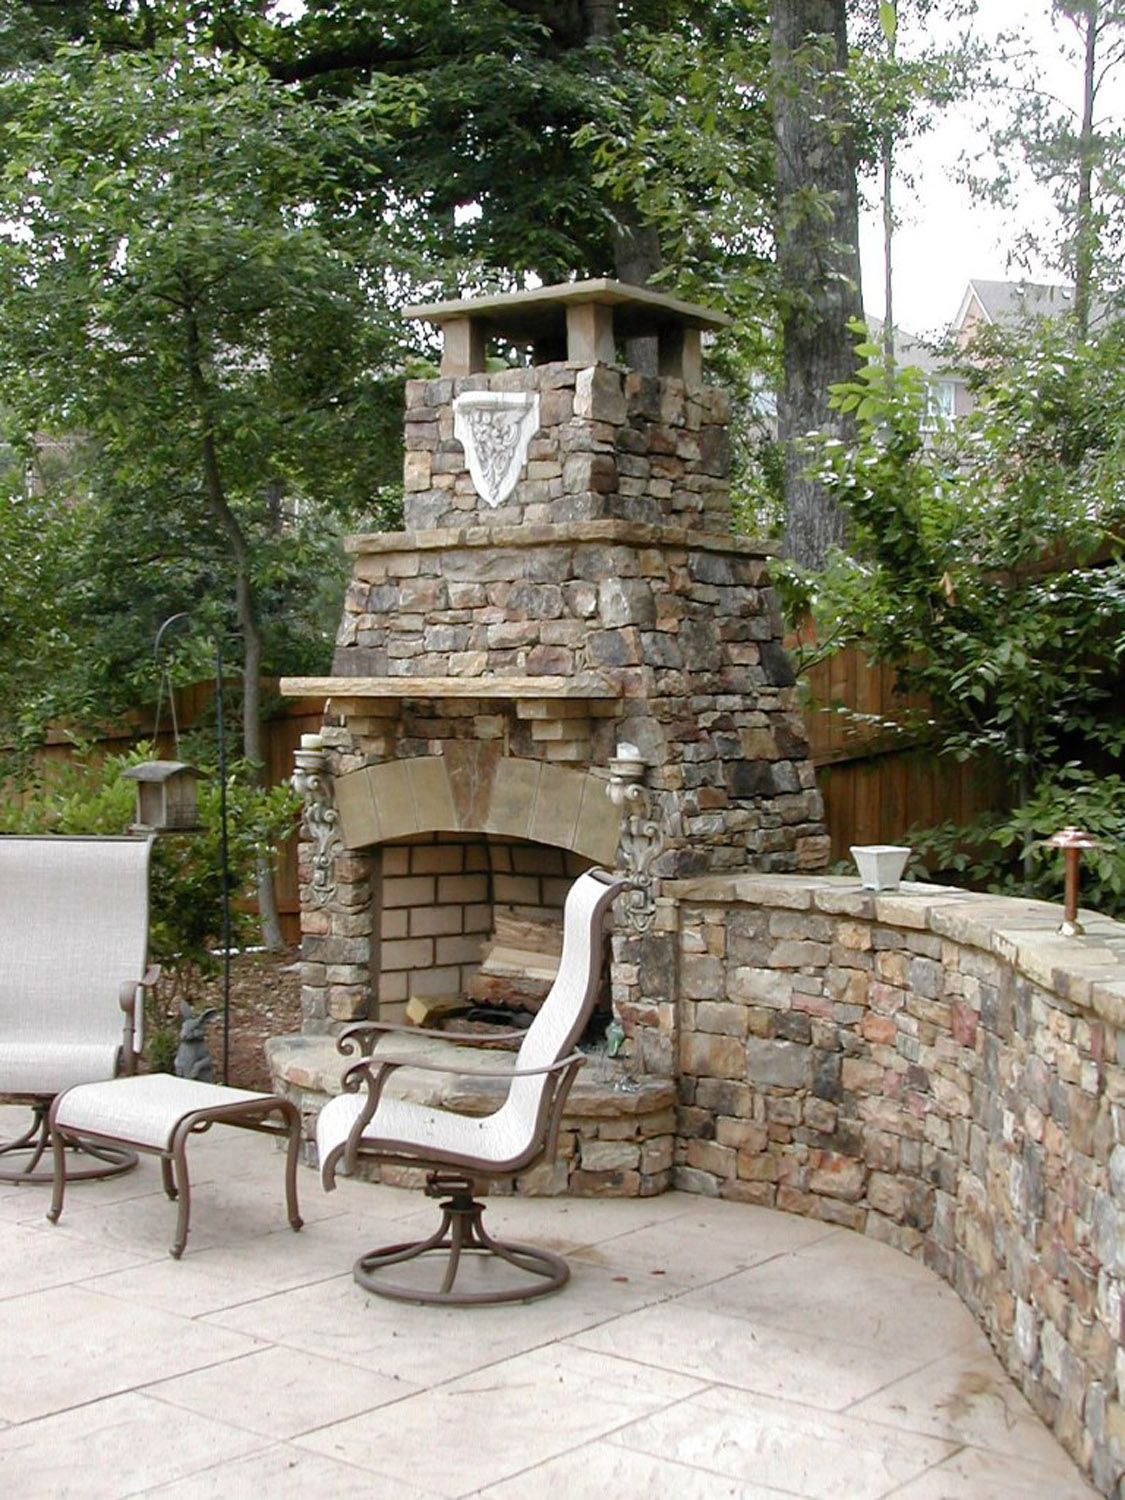 pics marvelous styles much outdoor building us appealing a cost files how list does angie an for stone trend photogiraffeme of and fireplace